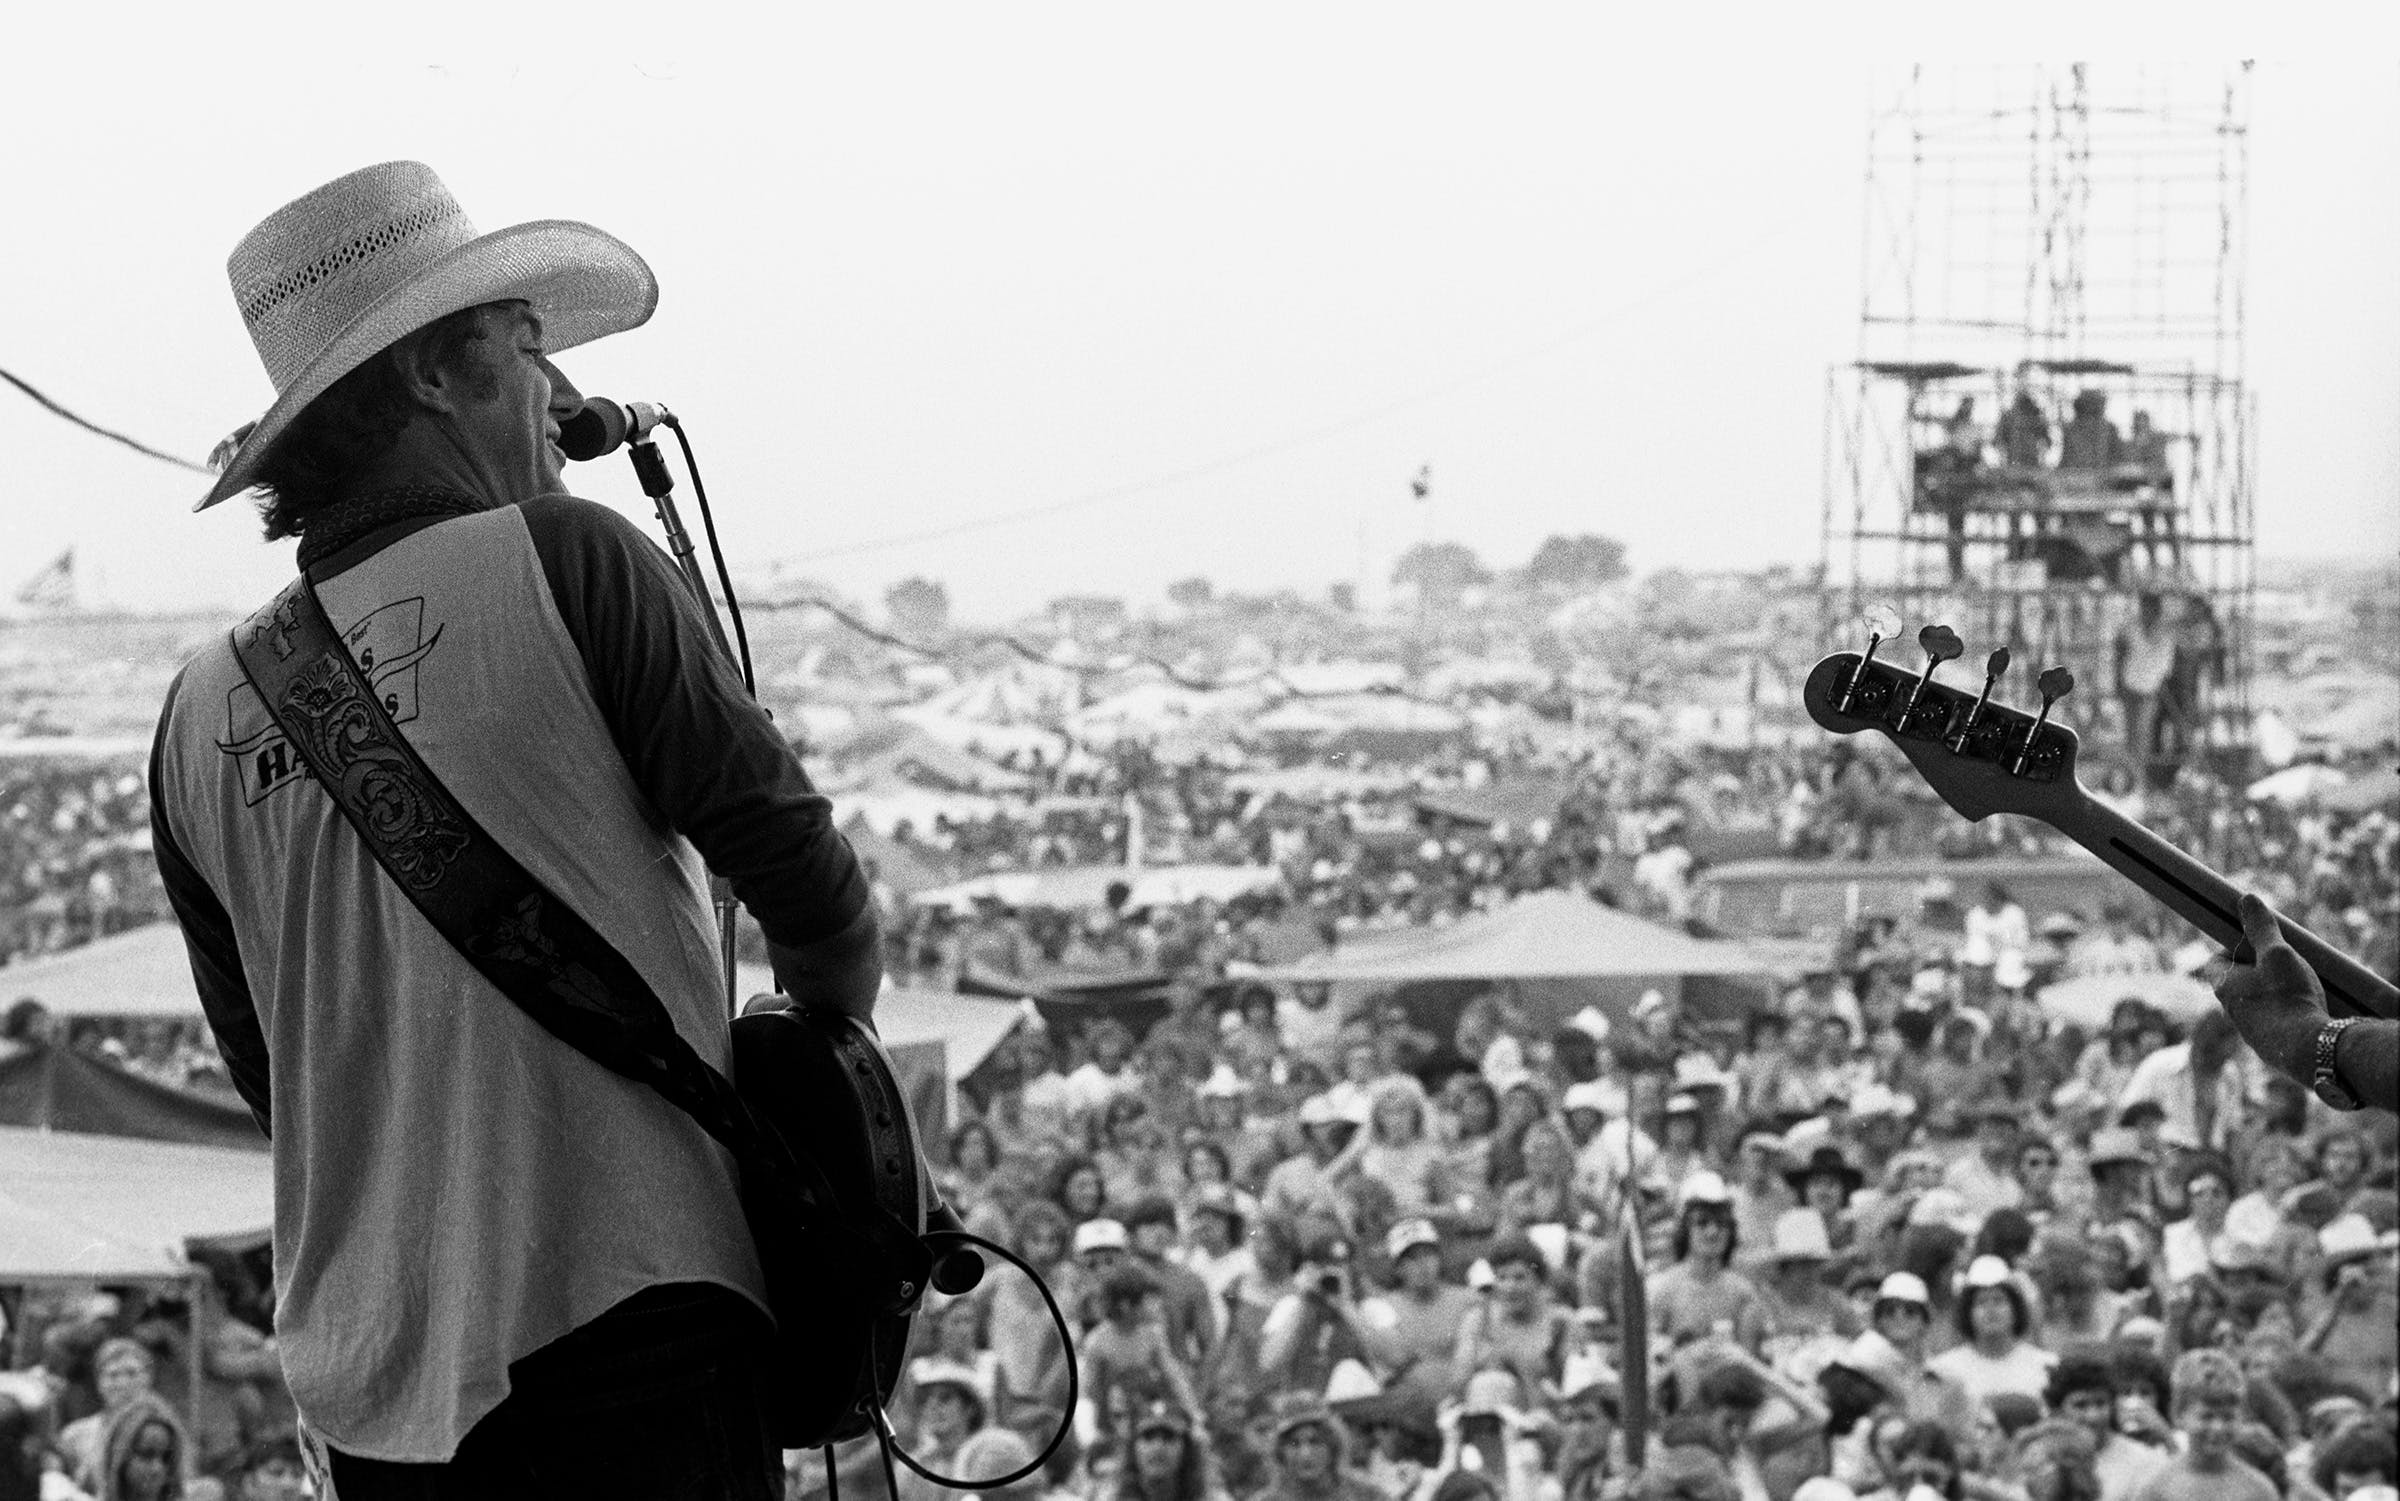 Jerry Jeff Walker at Willie's 4th of July Picnic in Gonzales, Texas, 1976.